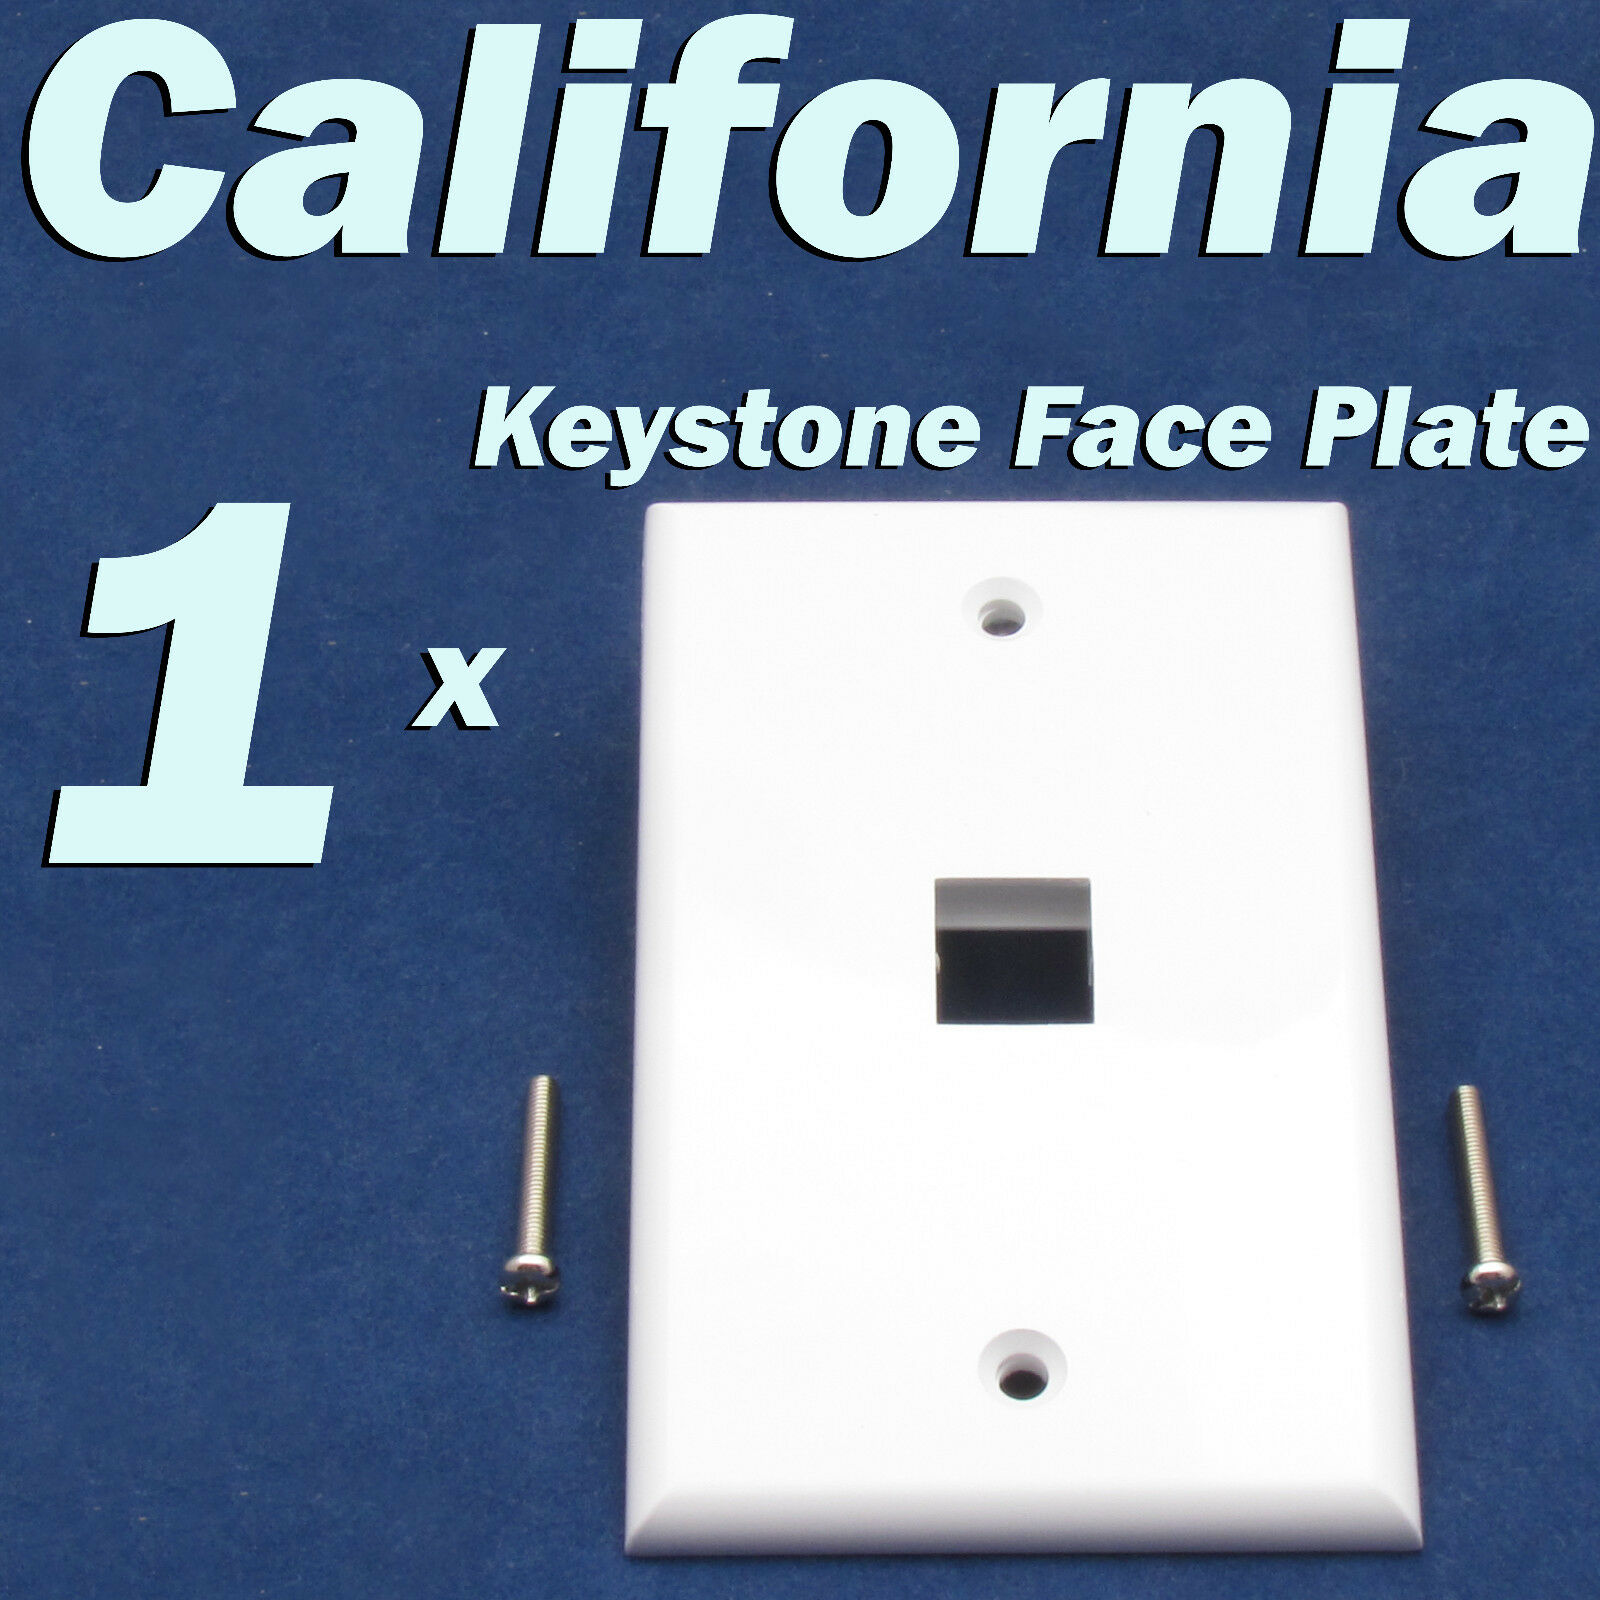 1 Port Keystone Jack Rj45 Cat5 Cat5e Cat6 Network Faceplate Wall Cat 5 Wiring Diagram Prise Plate White Of 9only Available